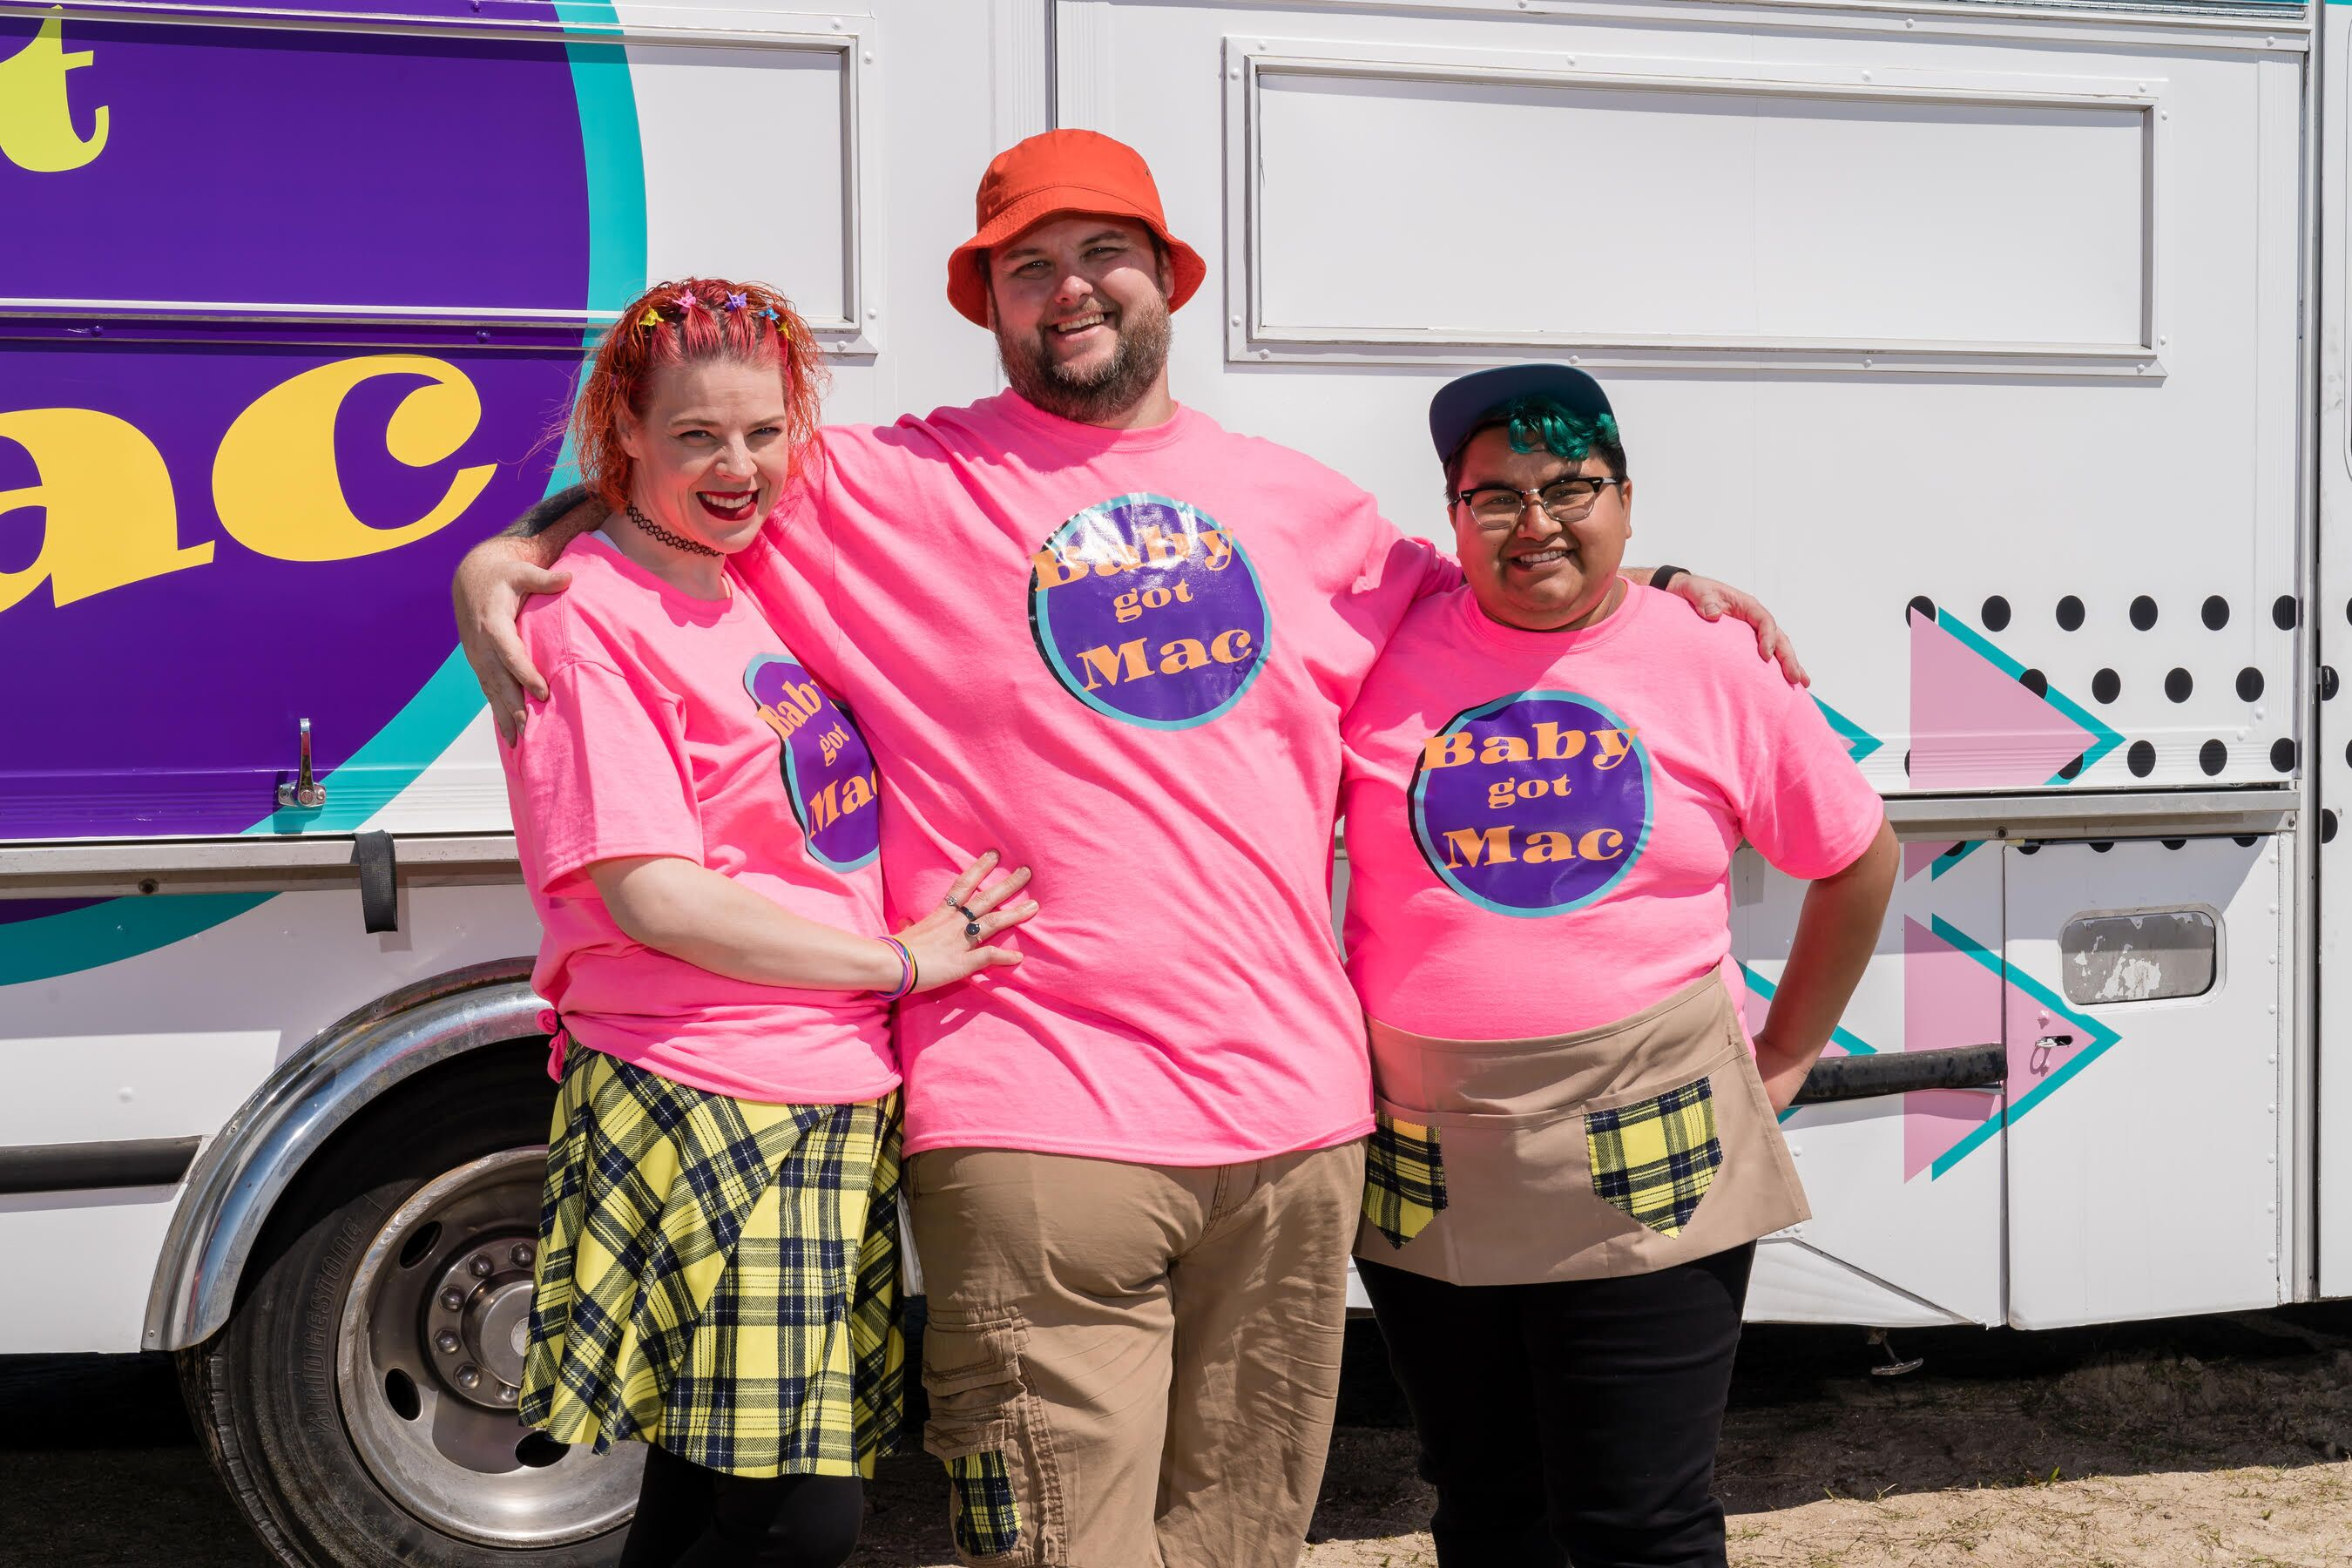 Baby Got Mac: The Great Food Truck Race team has a passion